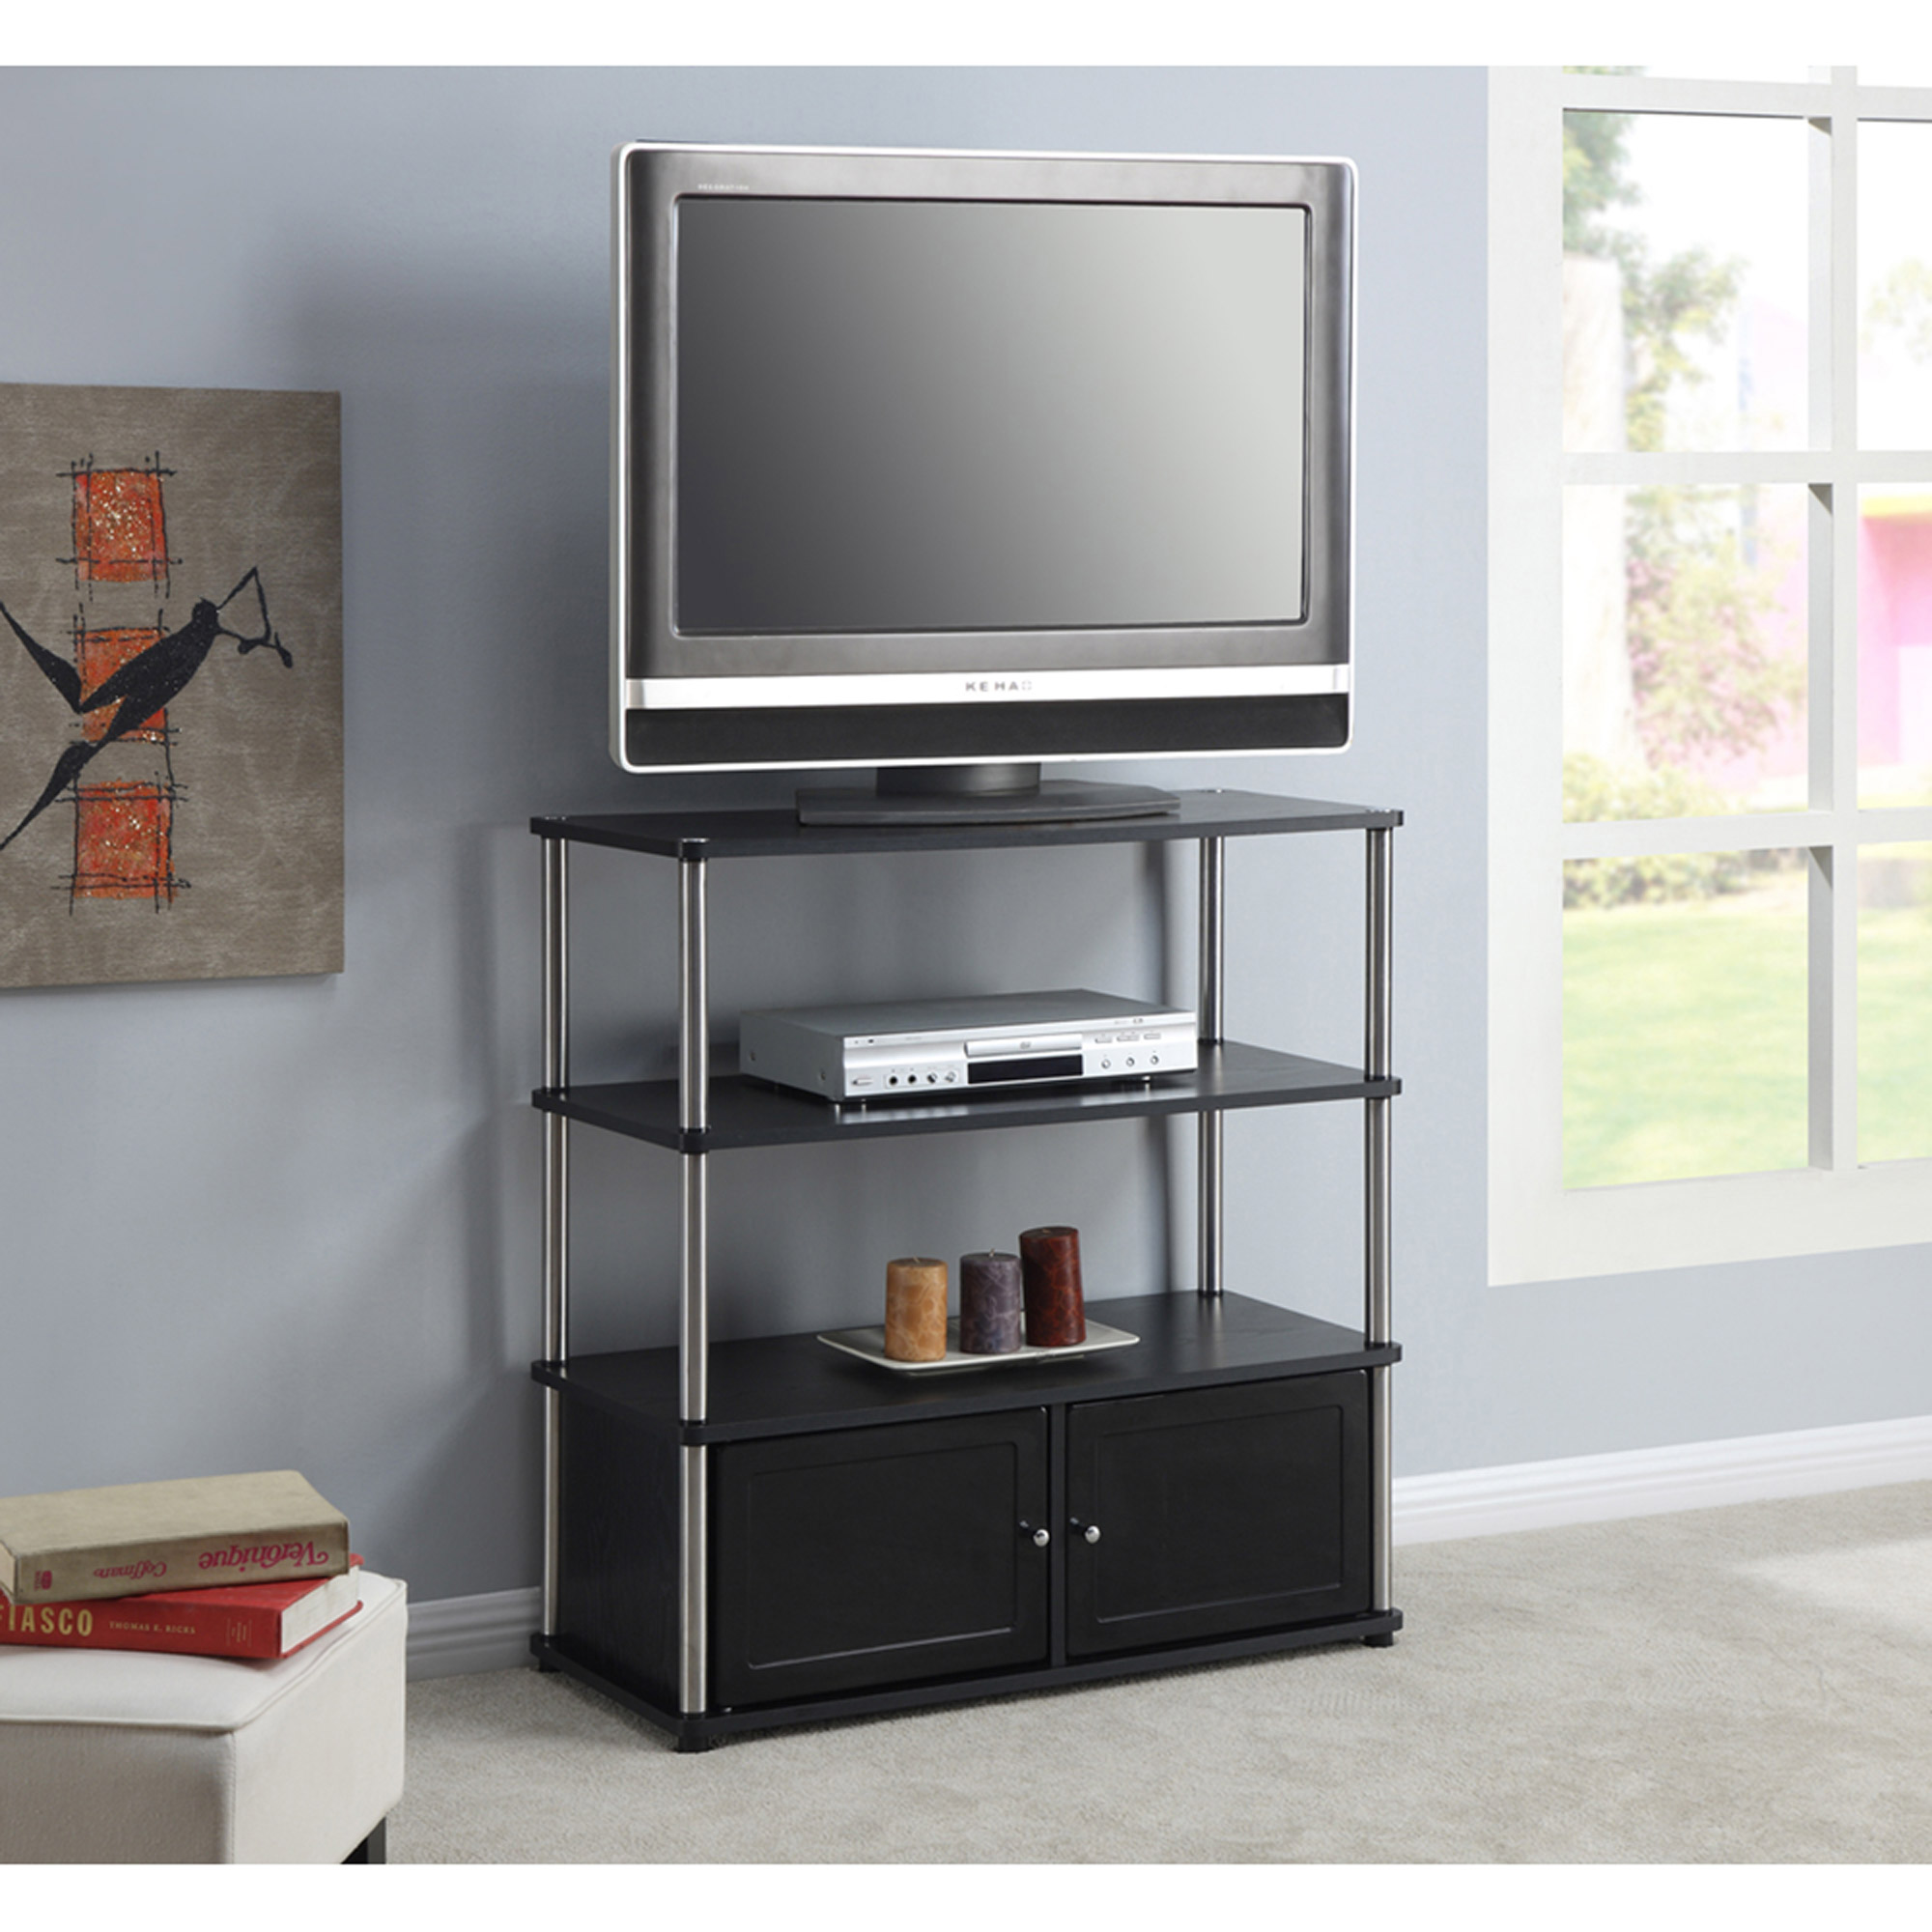 clutter for free center to designs entertainment console view wall mounted go by in rooms living room altus media prepac floating tv gallery